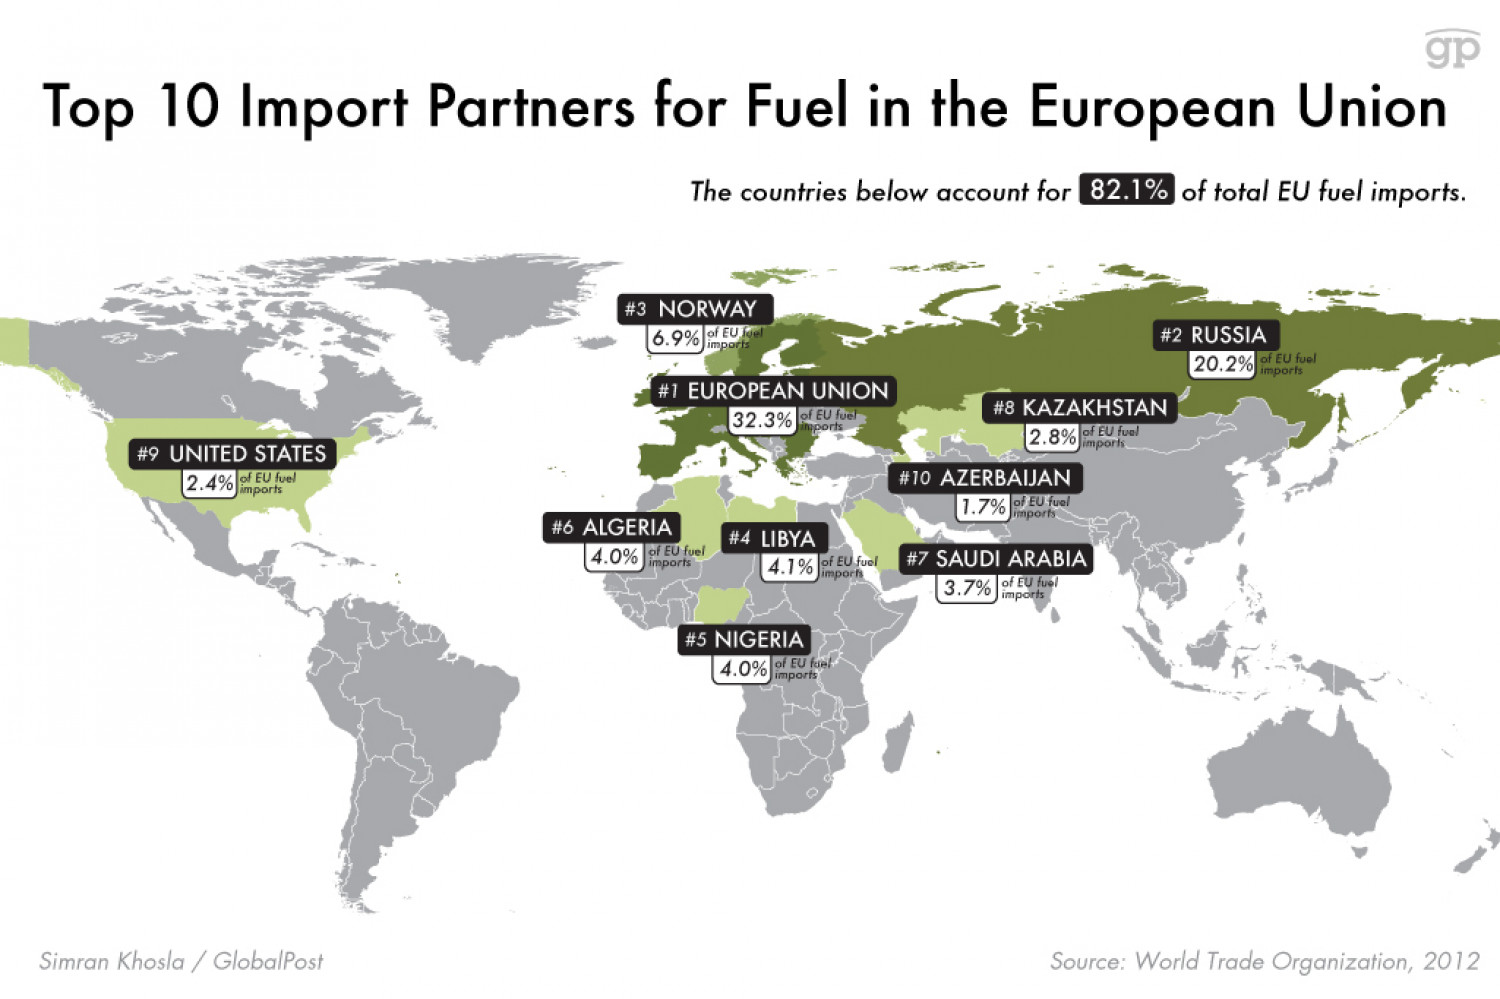 Top 10 Import Partners for Fuel in the European Union Infographic